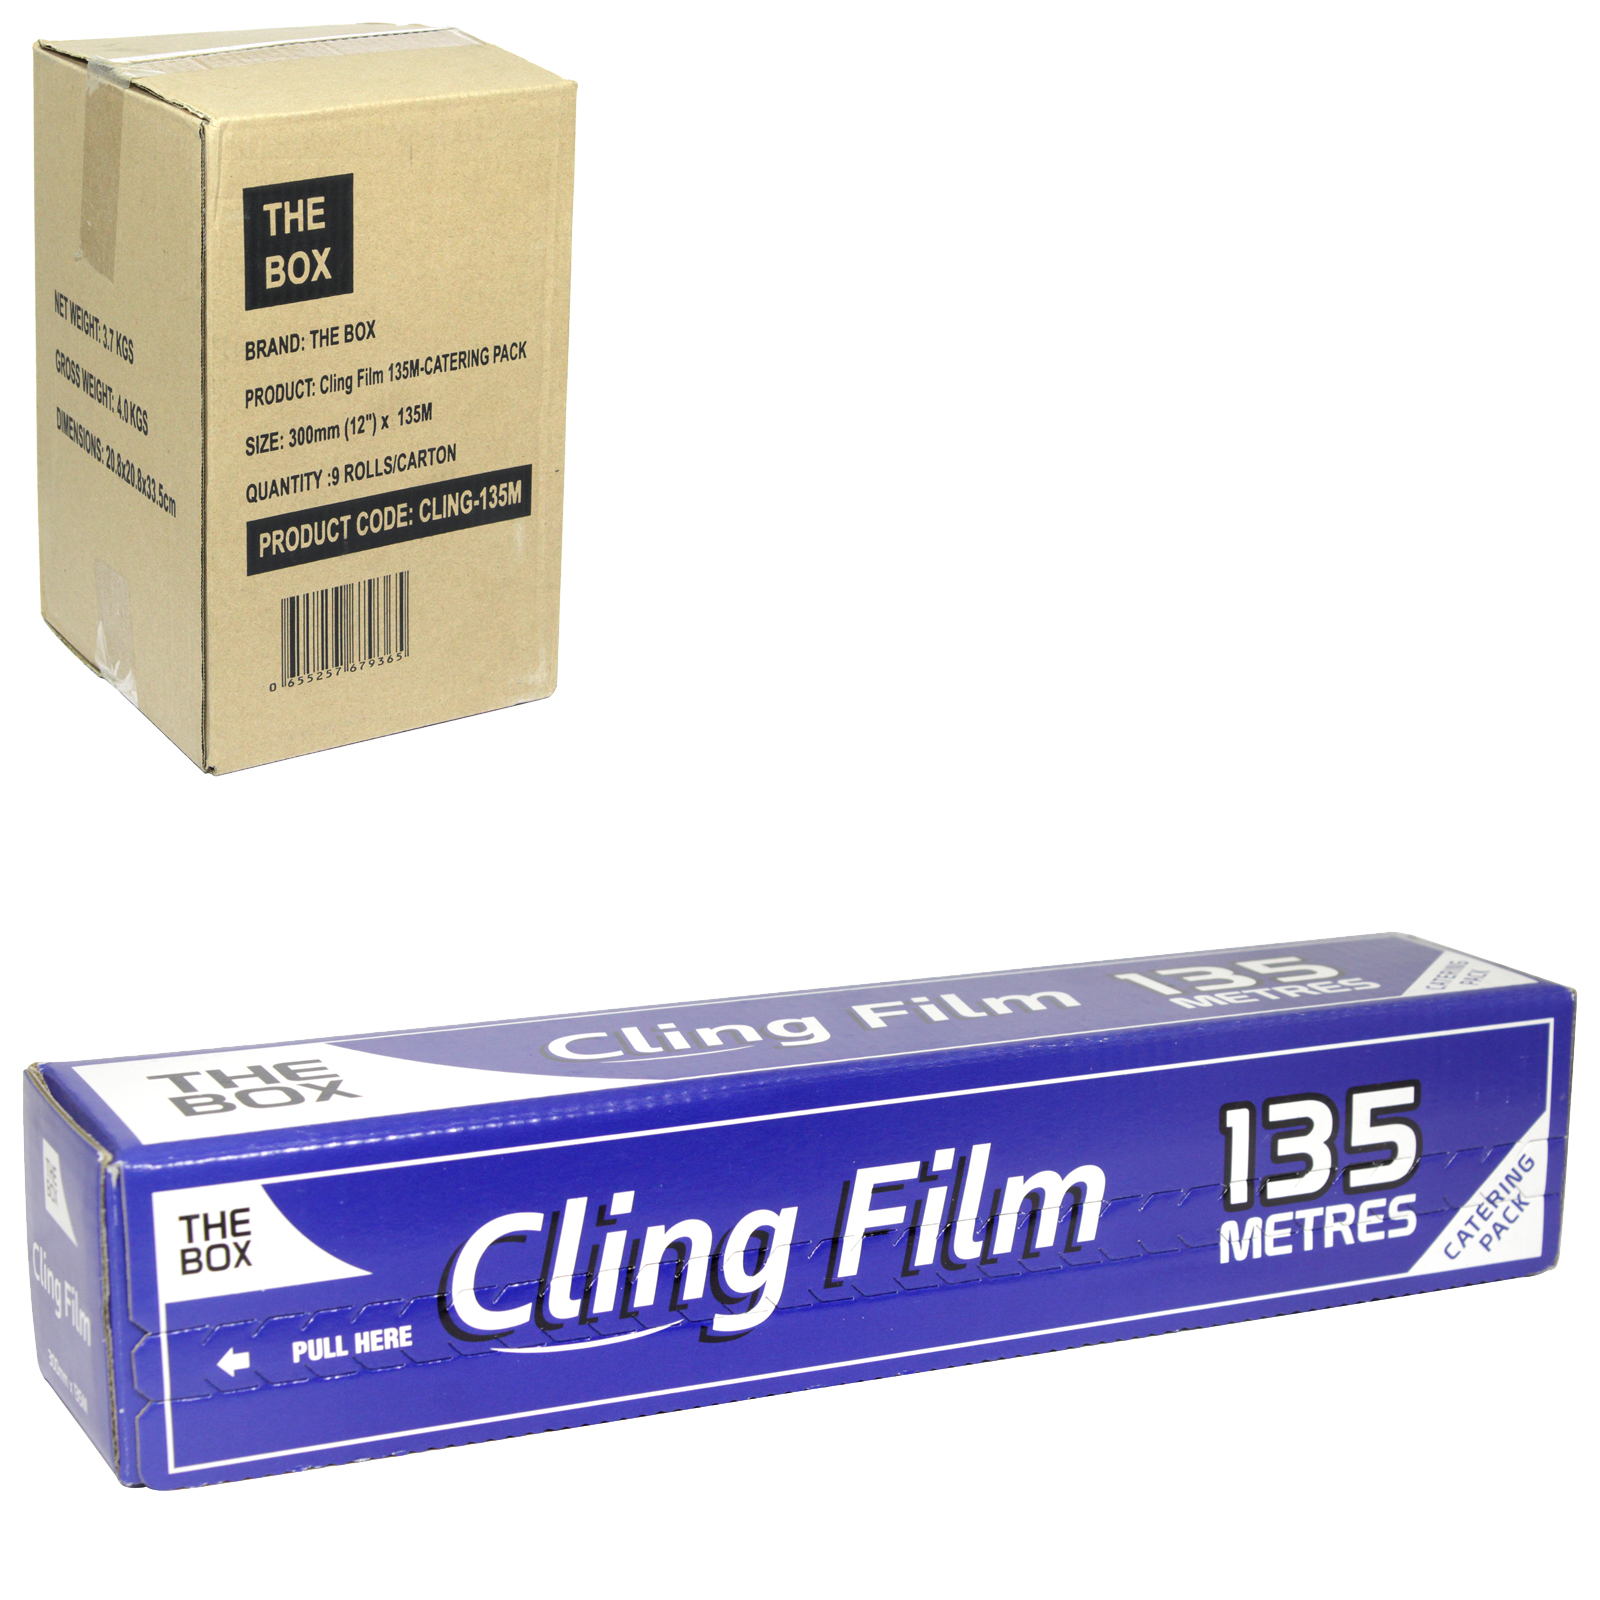 CATERING CLING FILM 300MMX135M  X9